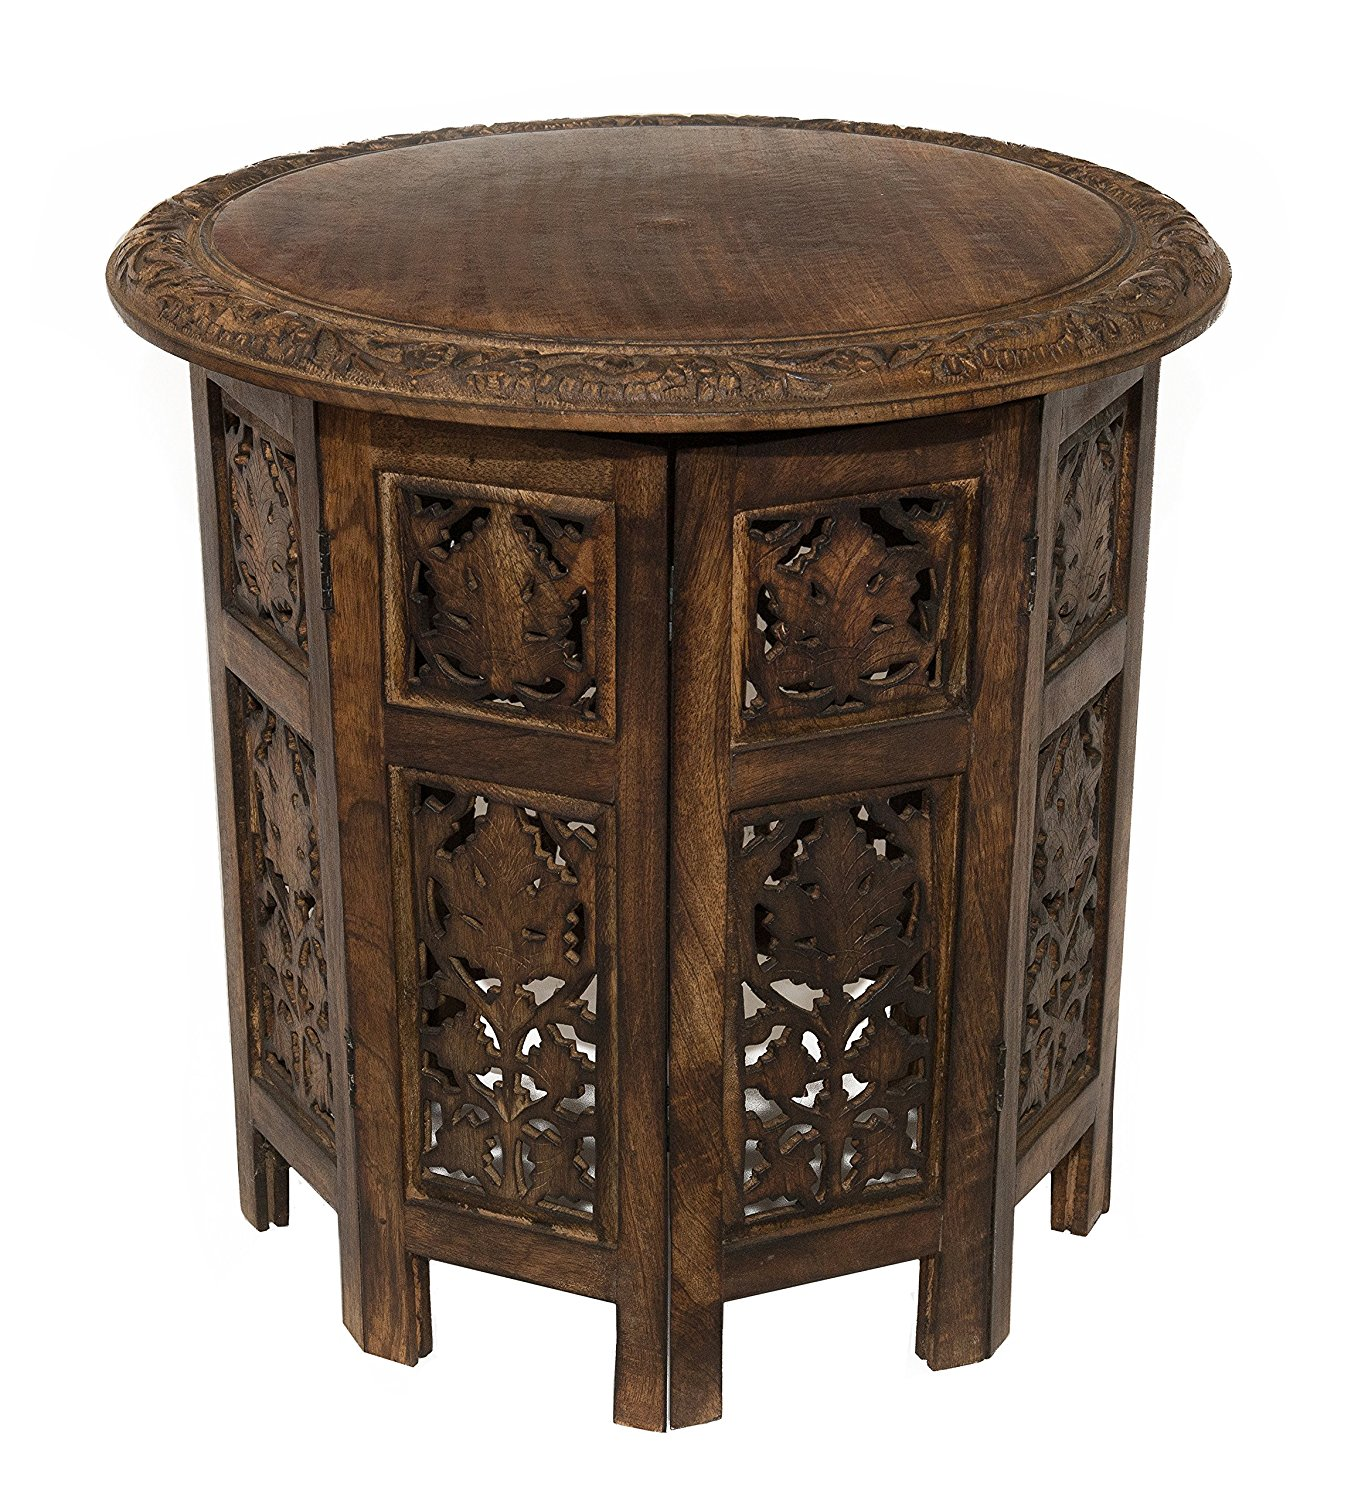 lovely small accent table for ornate end tables wooden round white oak coffee leather chair wood floor threshold mirrored glass with drawer industrial night western style